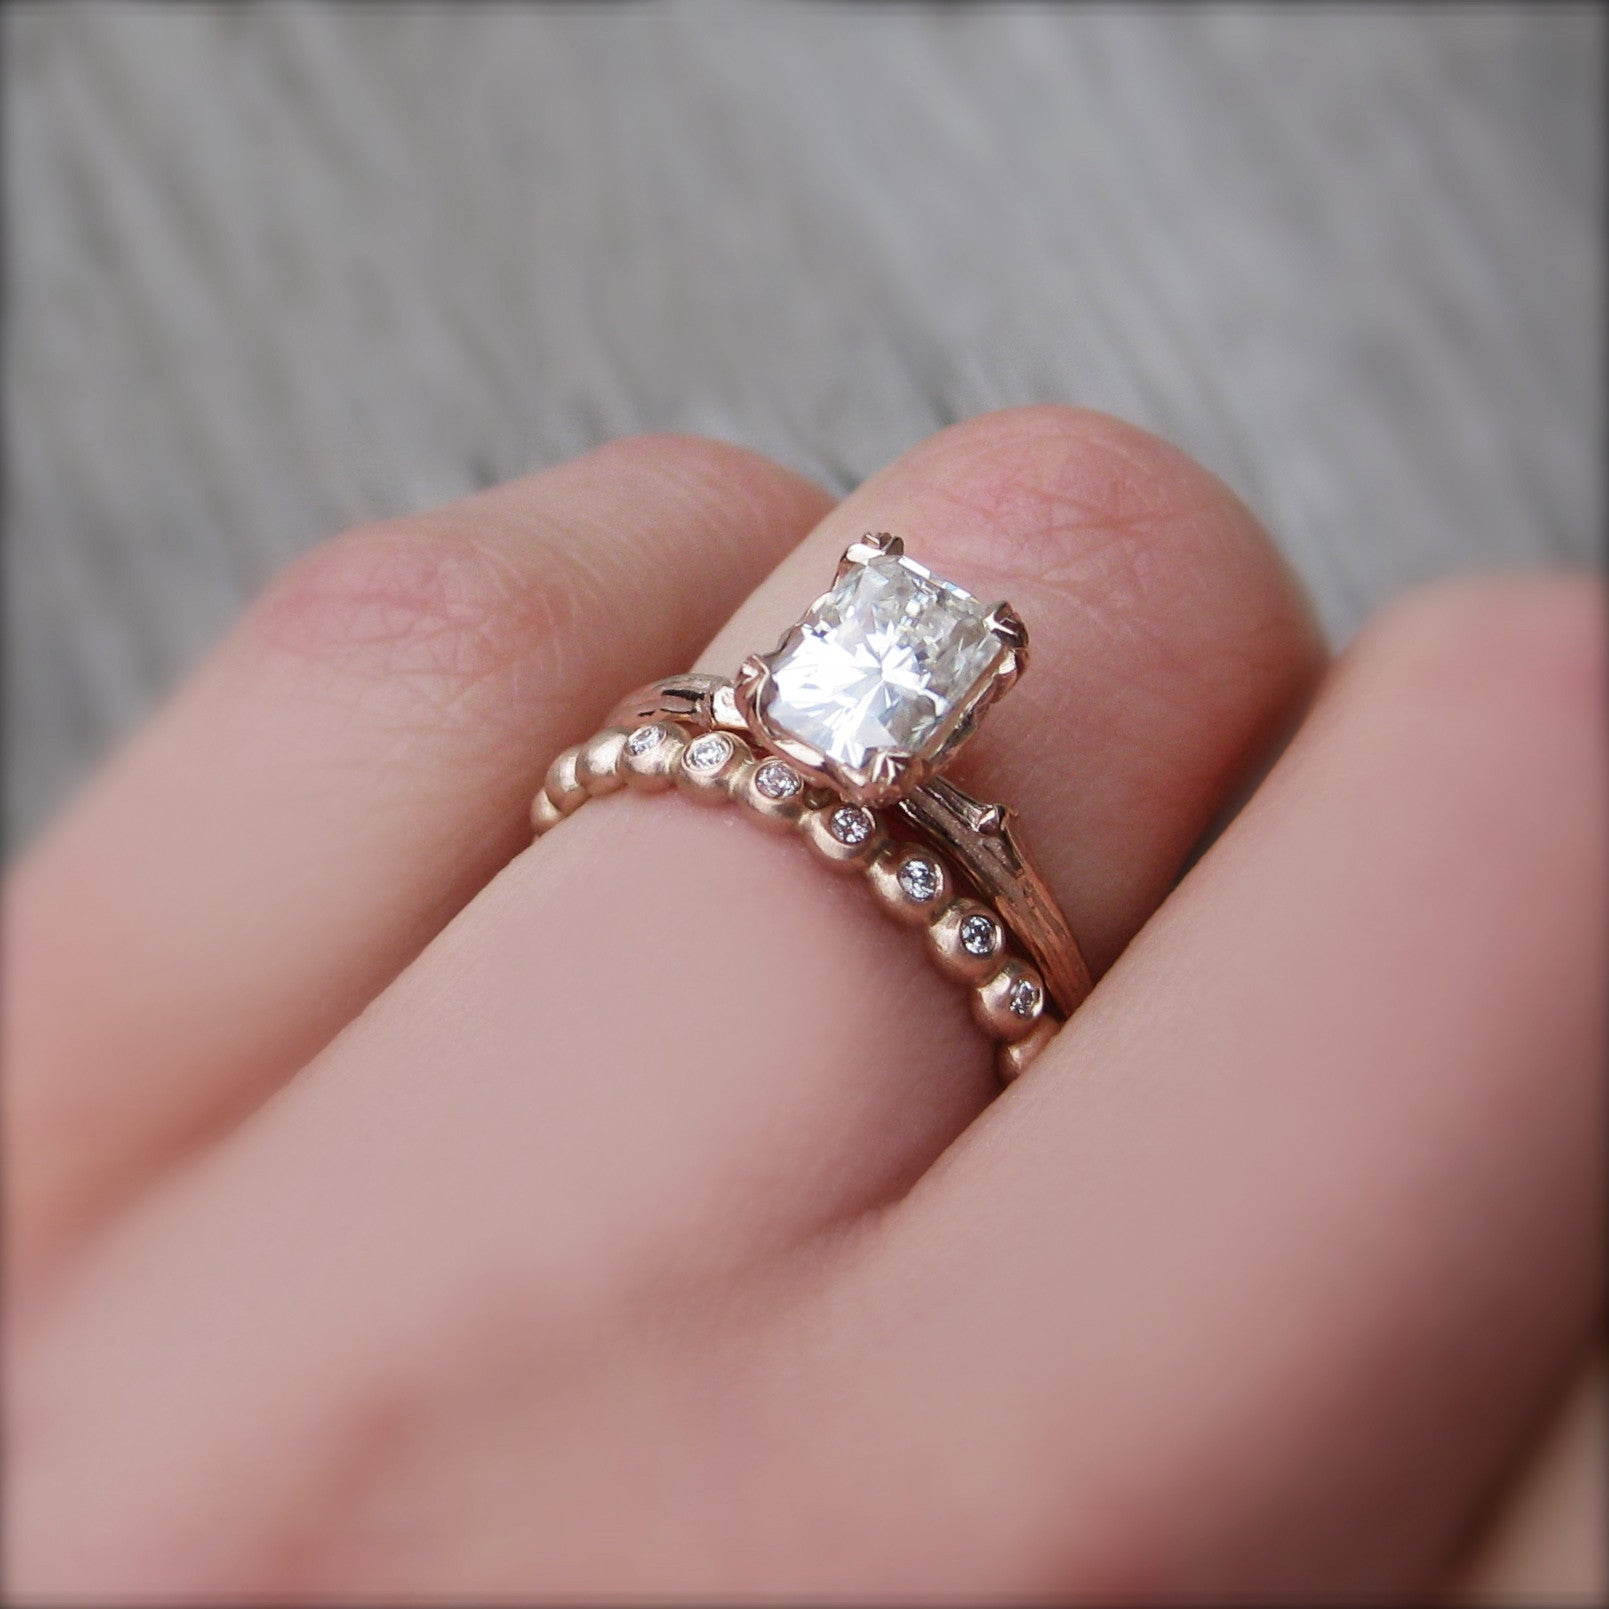 Radiant Cut Forever One Moissanite Twig Engagement Ring: 1.2ct ...